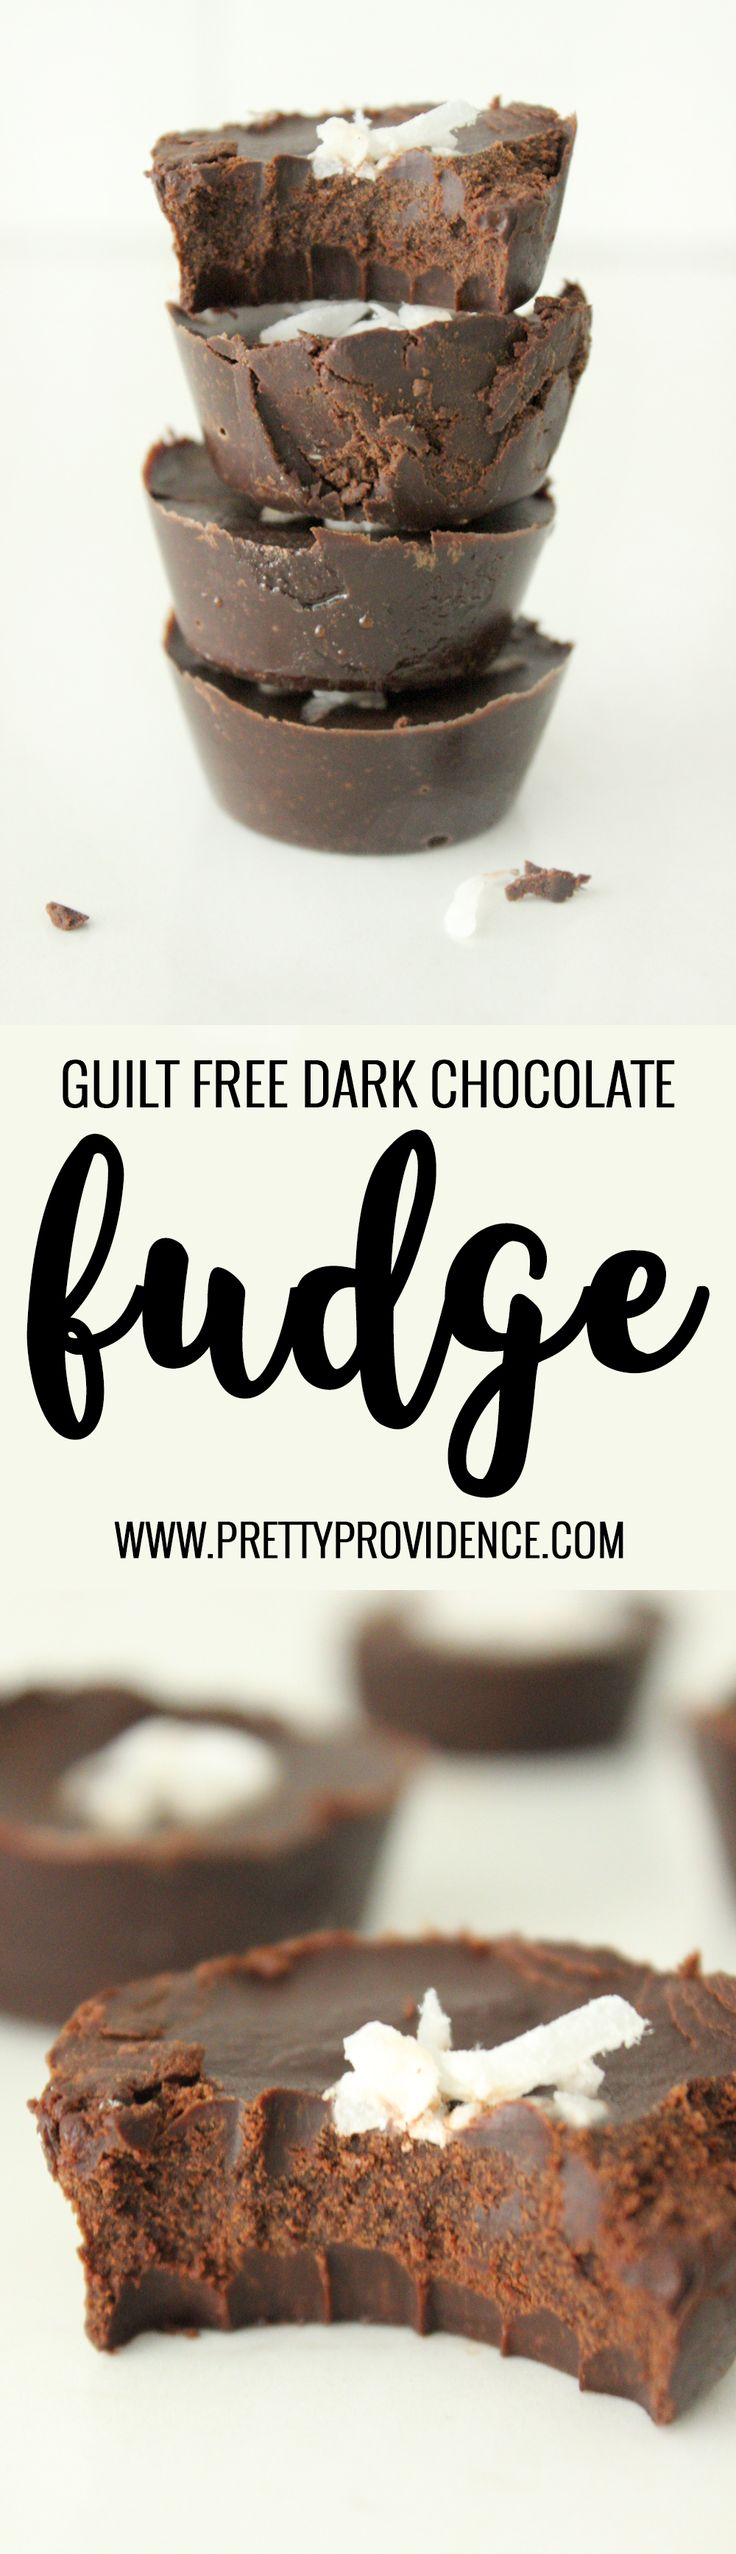 Absolutely amazing guilt free dark chocolate fudge! Can be made vegan, paleo or sugar free! Tastes just like a dark chocolate truffle- perfect melt in your mouth texture! You won't regret trying out this one!